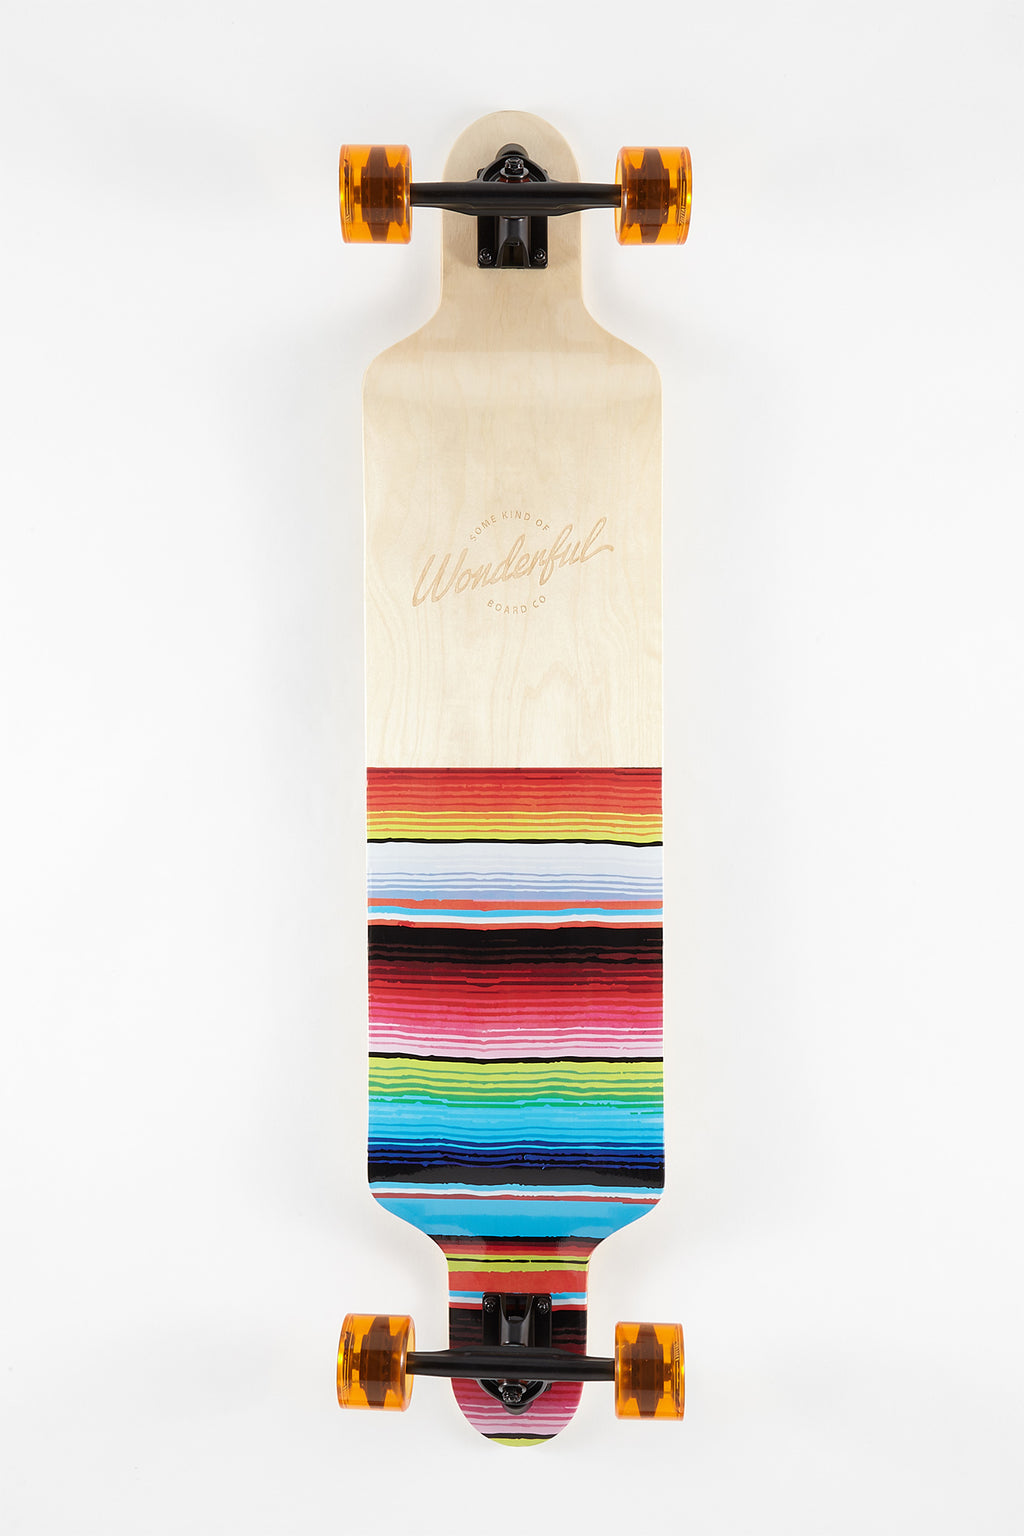 Wonderful Serape Longboard - 42""